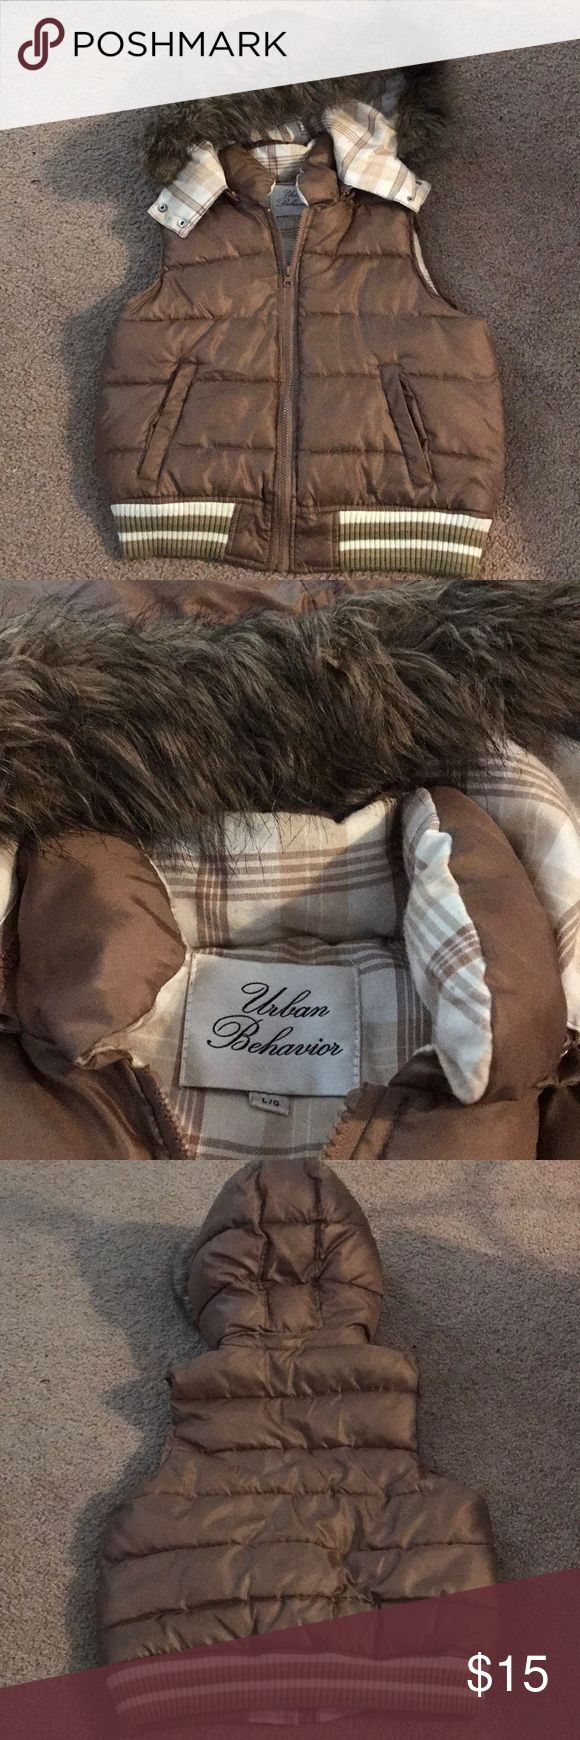 Urban Behavior Fashion Vest Very cute vest from Urban Behavior. It is a youth large, but fits a women's xsmall/Small. It has little signs of use and no flaws. Faux fur on the hood of the vest. Very warm and fashionable. It's a light brown color Urban Behavior Jackets & Coats Vests